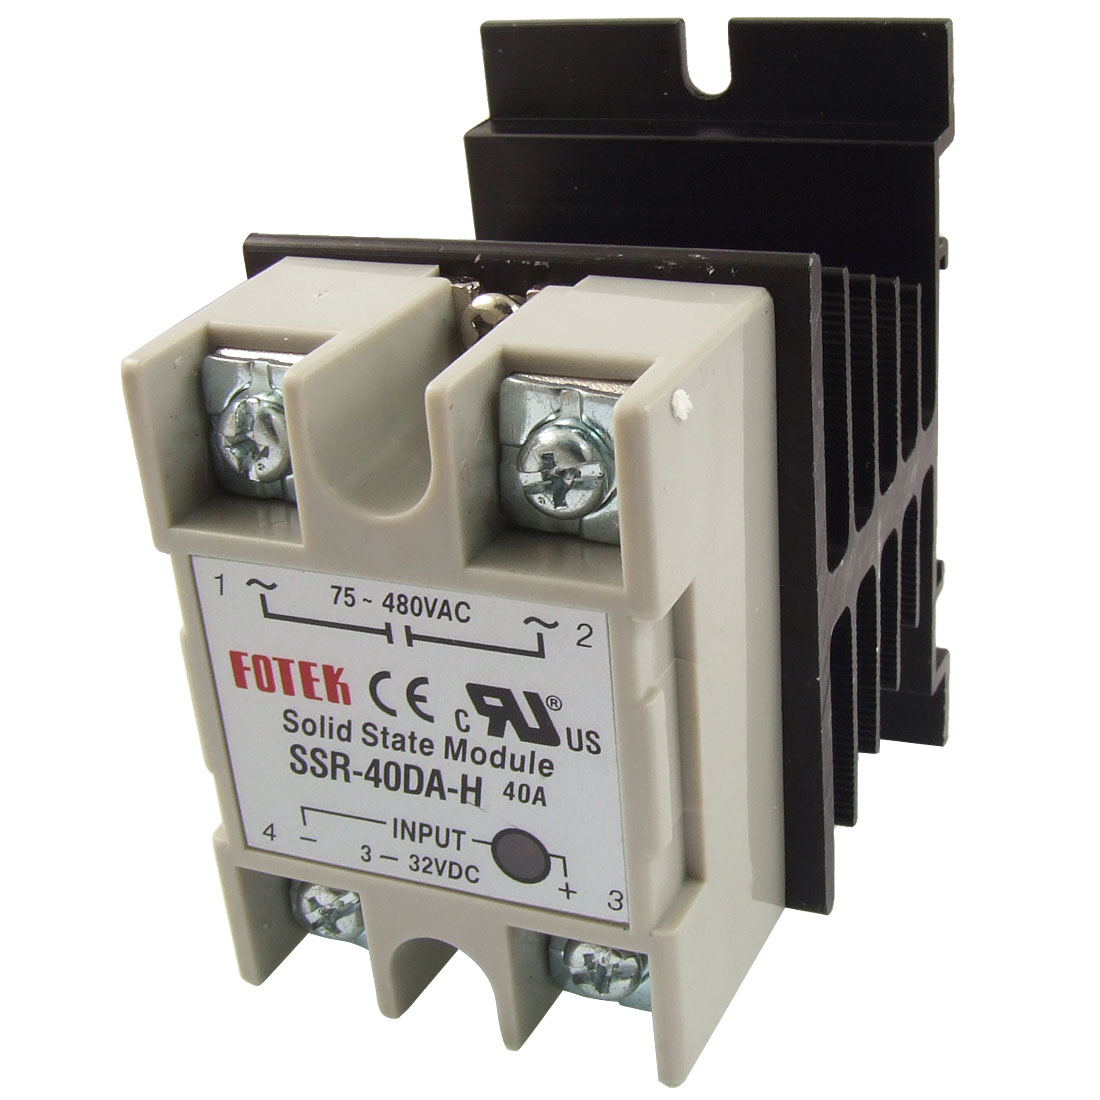 LED Indicator Solid State Relay SSR-40DA-H 40A 3-32V DC 75-480V AC + Heat Sink